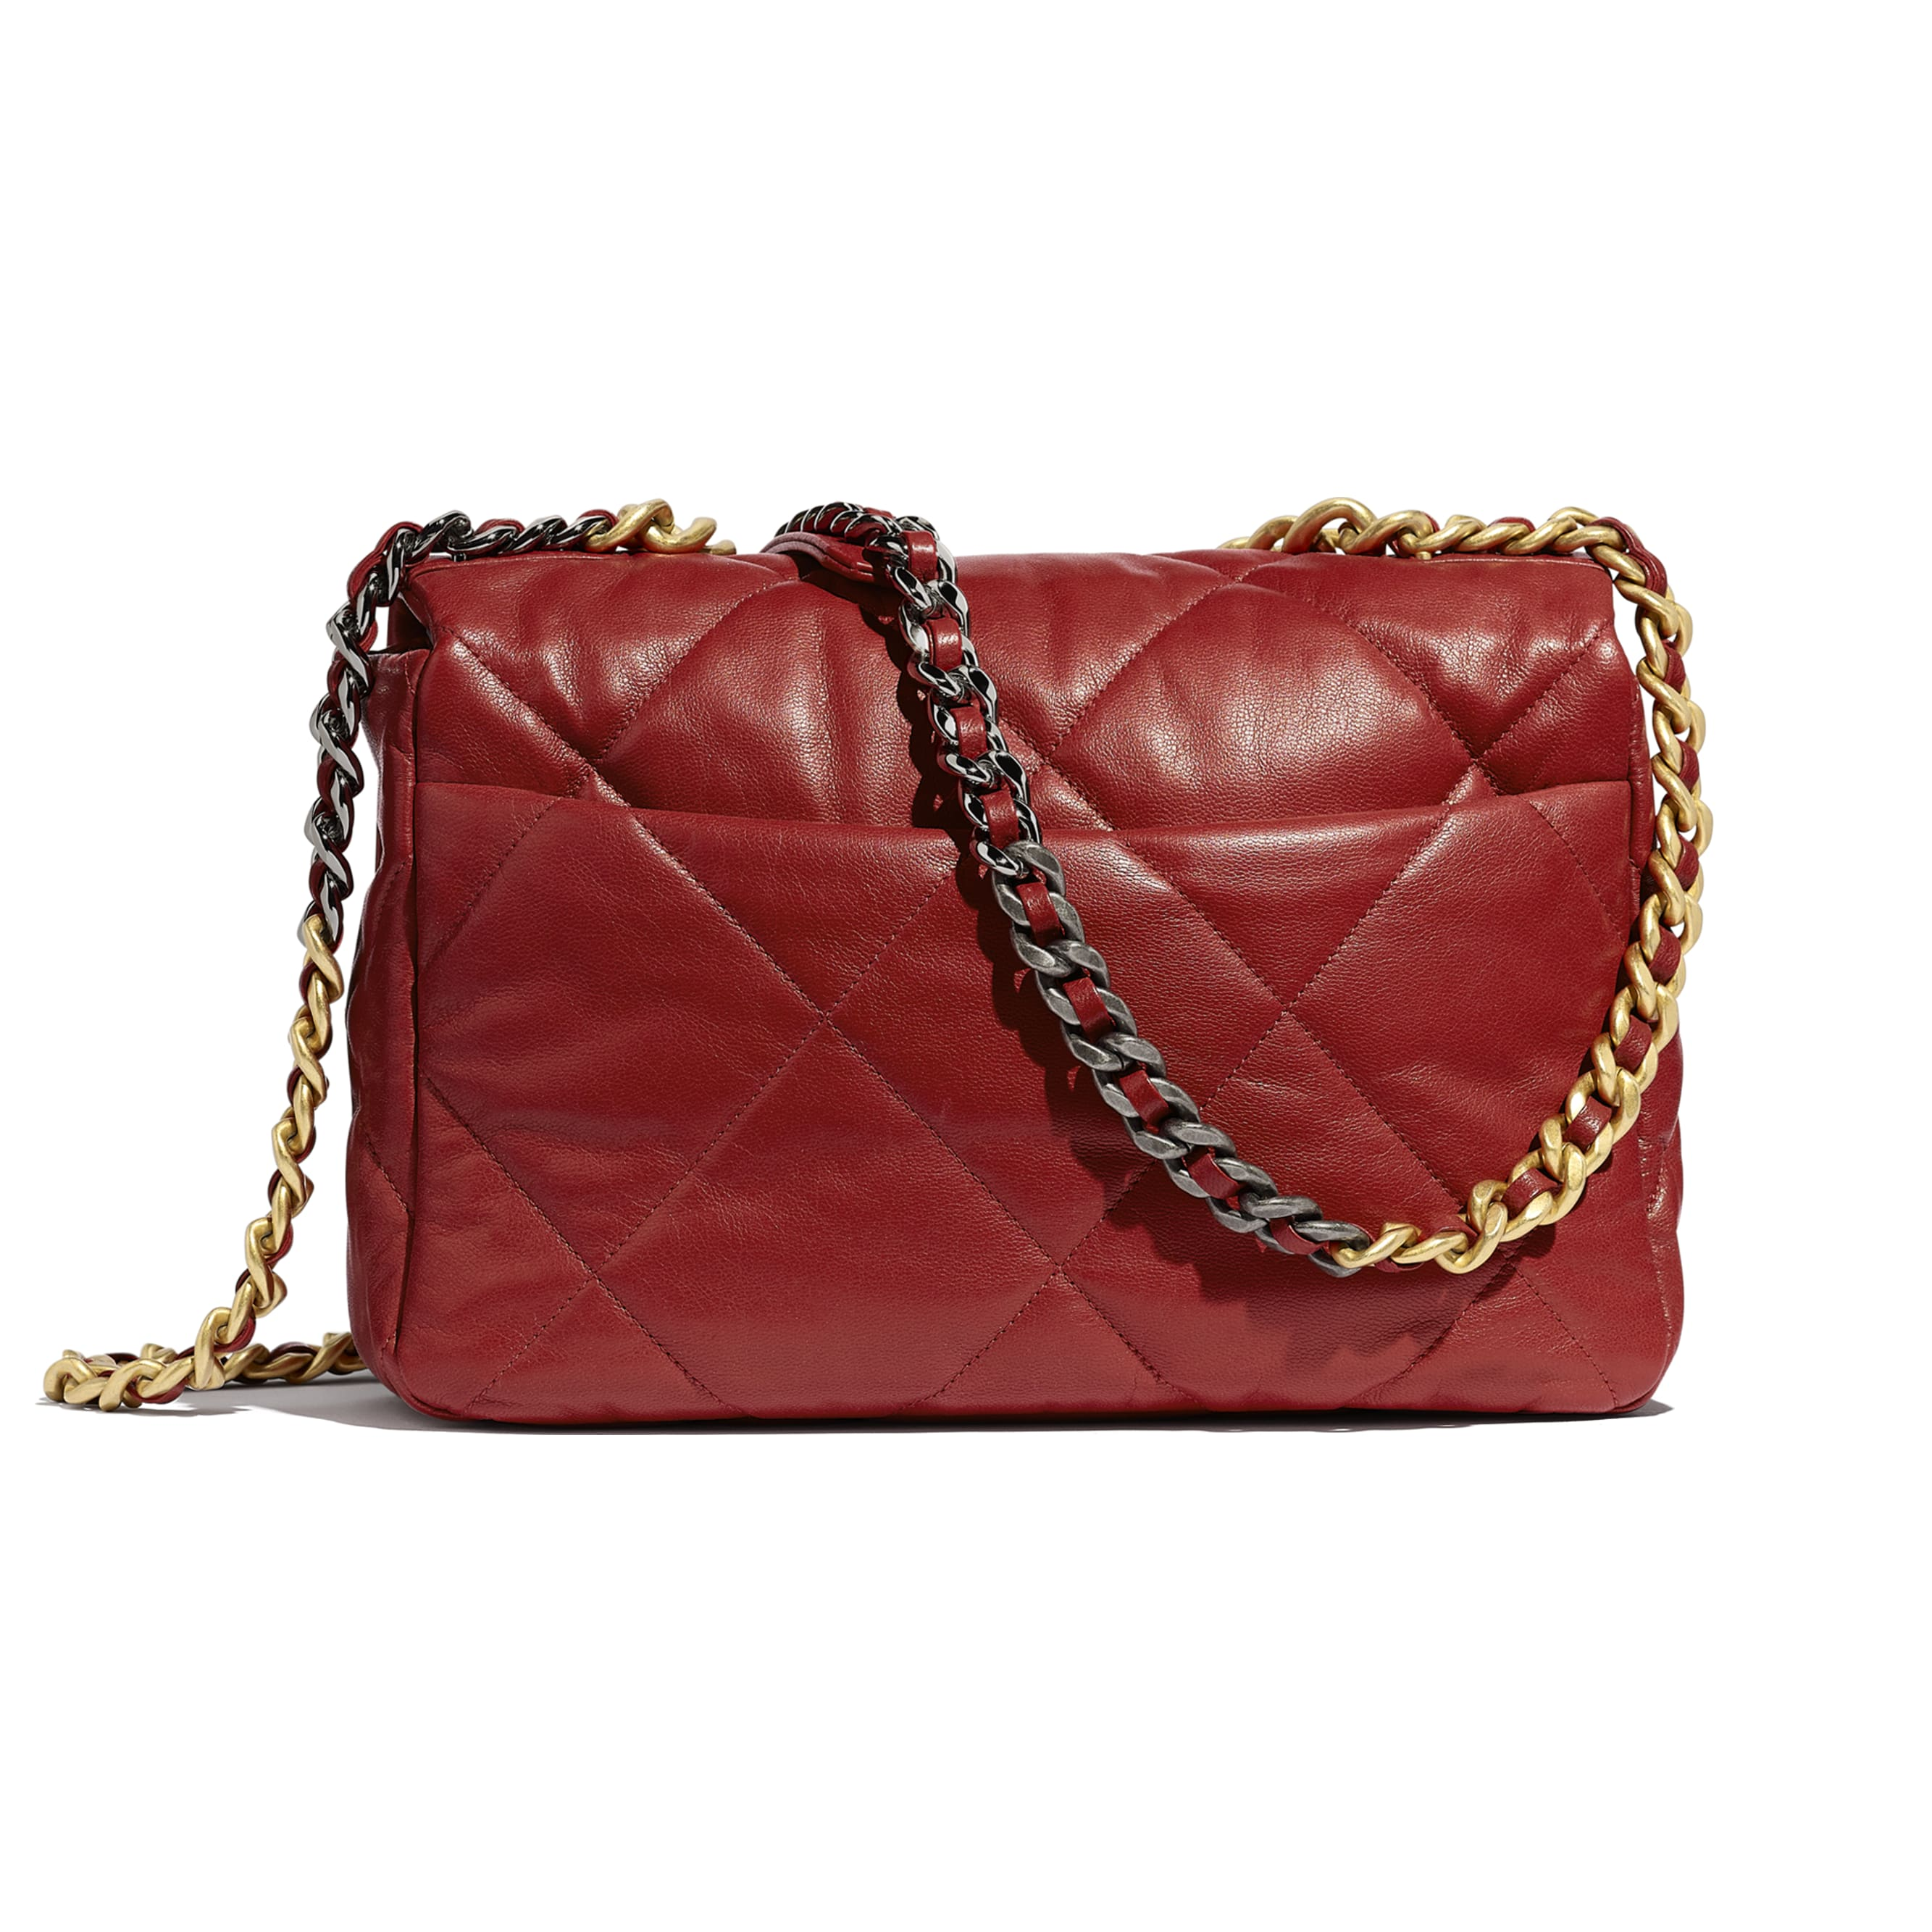 CHANEL 19 Large Flap Bag - Red - Goatskin, Gold-Tone, Silver-Tone & Ruthenium-Finish Metal - Alternative view - see standard sized version